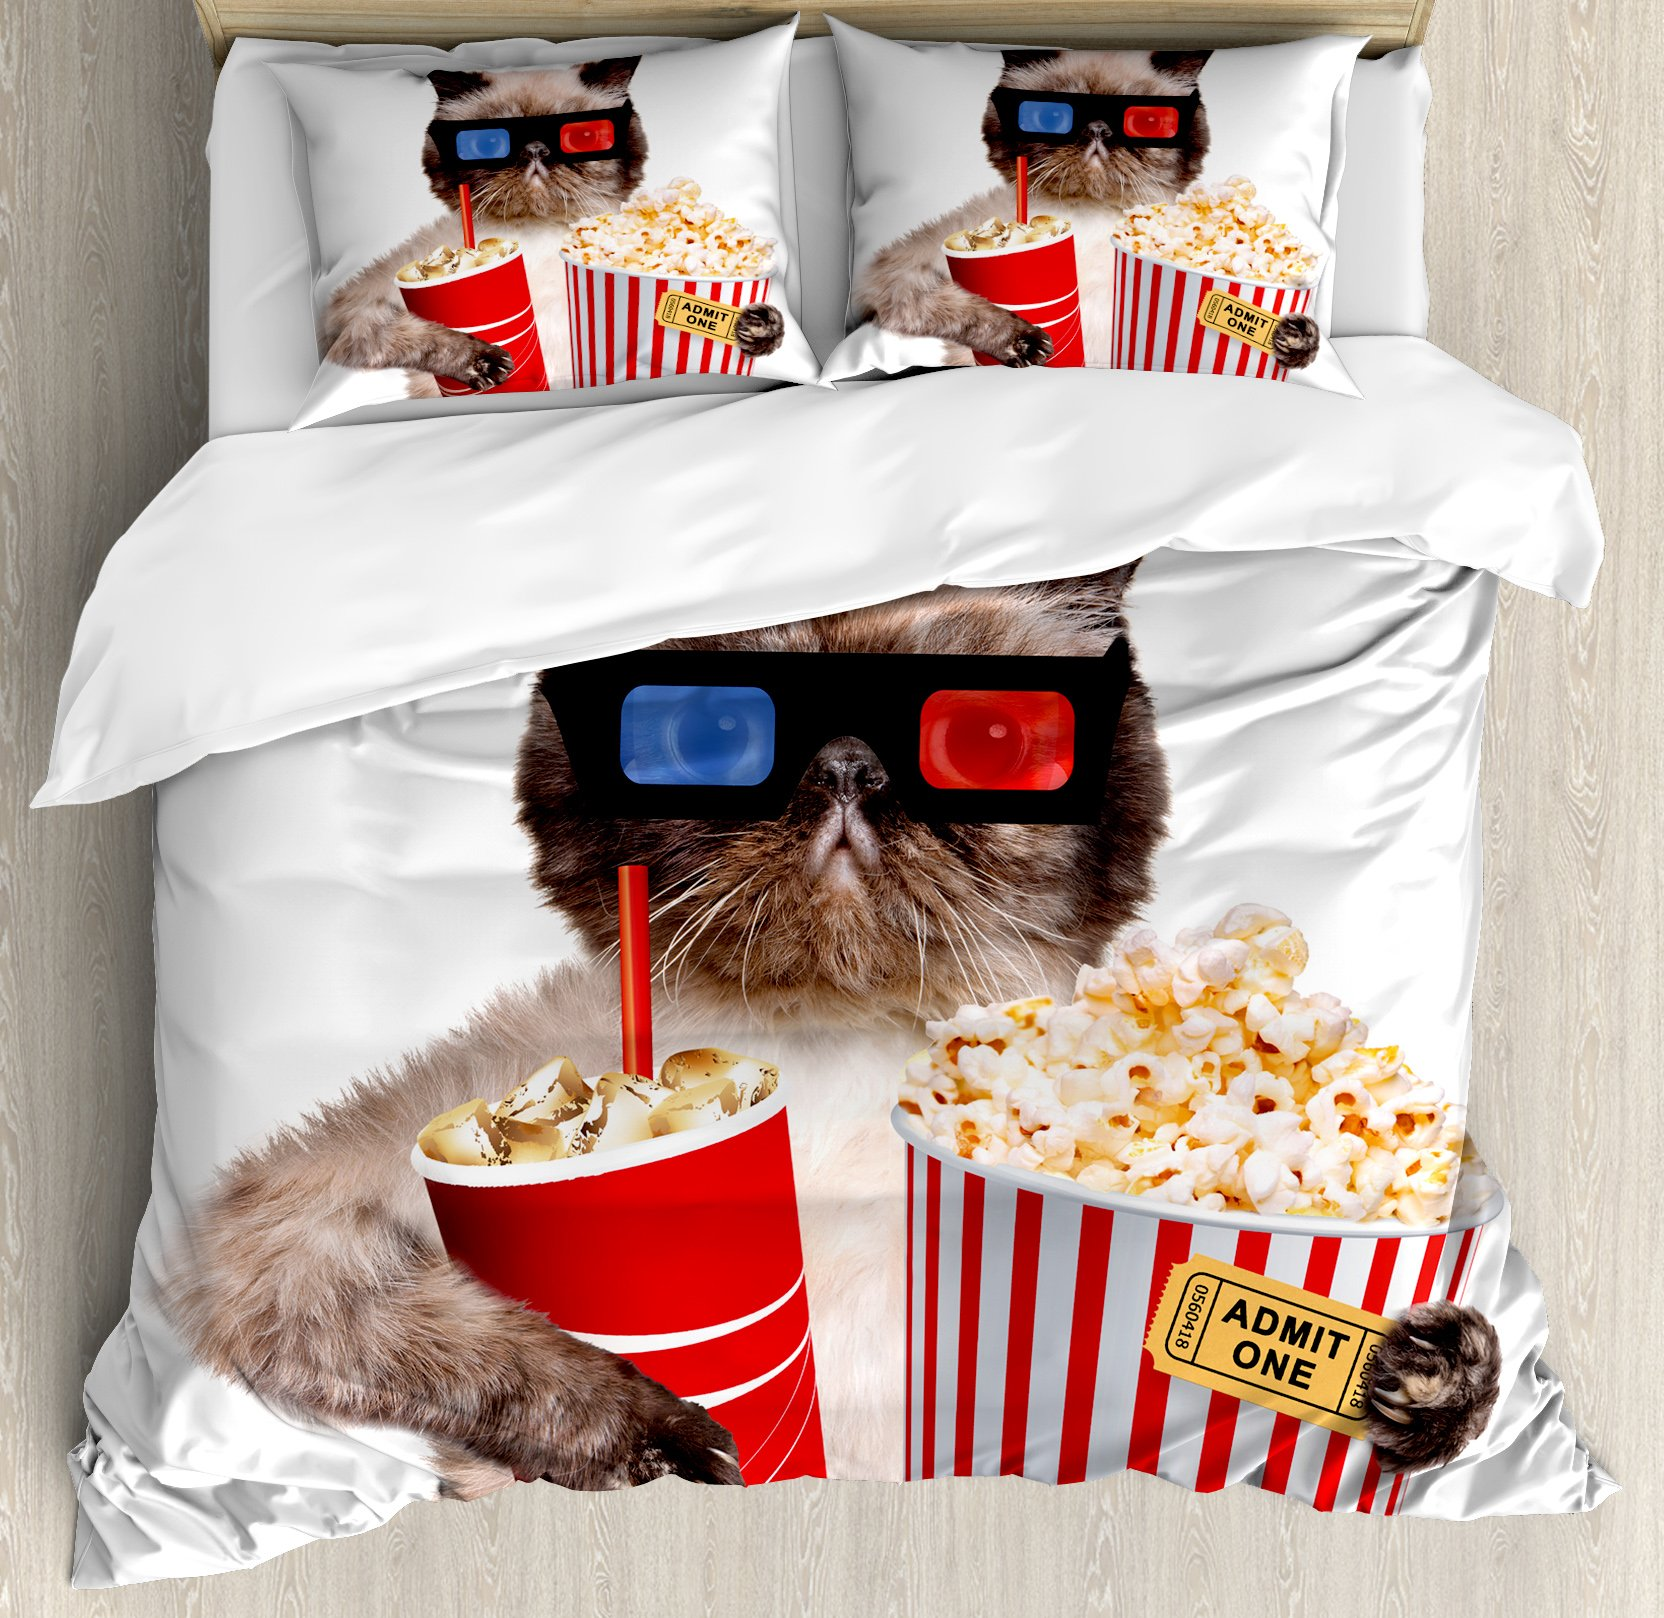 Movie Theater Decor Queen Size Duvet Cover Set by Ambesonne, Cat with Popcorn and Drink Watching Movie Glasses Entertainment Cinema, Decorative 3 Piece Bedding Set with 2 Pillow Shams, Multicolor by Ambesonne